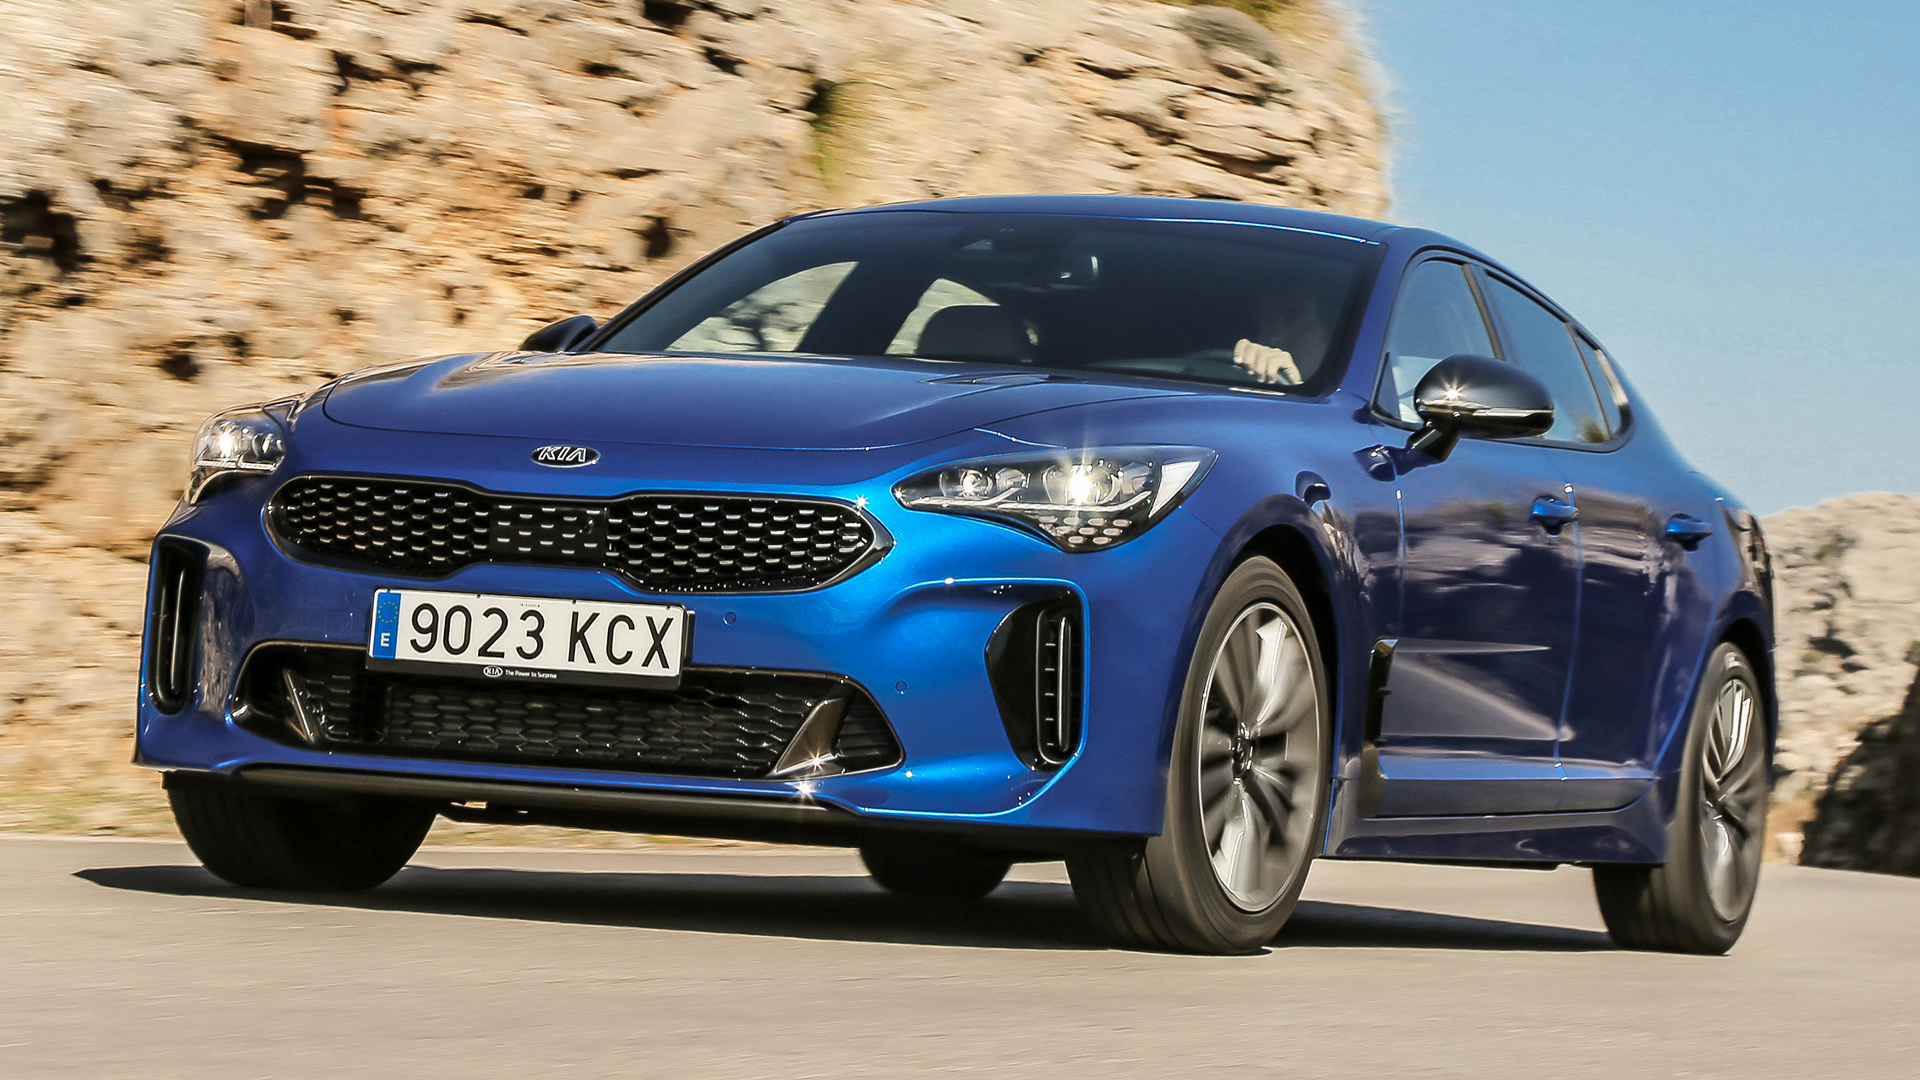 Kia Stinger Gt >> 2017 Kia Stinger GT-Line - Wallpapers and HD Images | Car ...